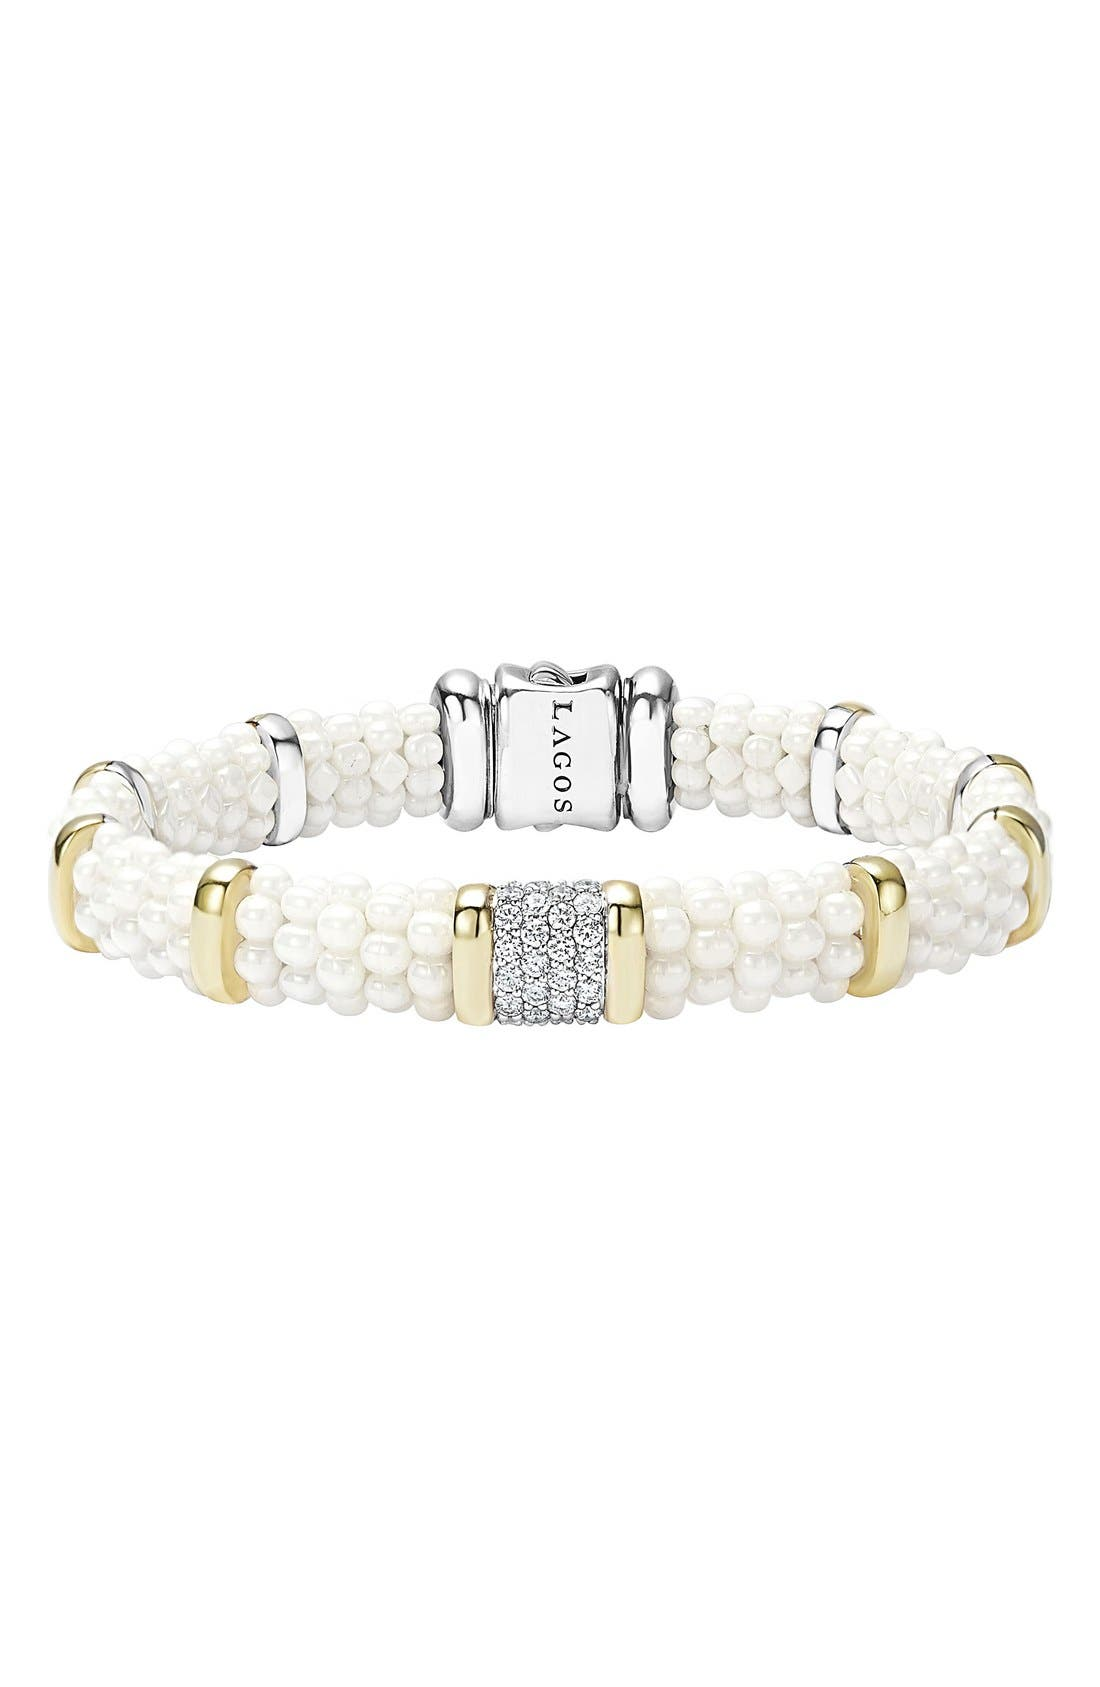 Main Image - LAGOS 'White Caviar' Diamond Station Bracelet